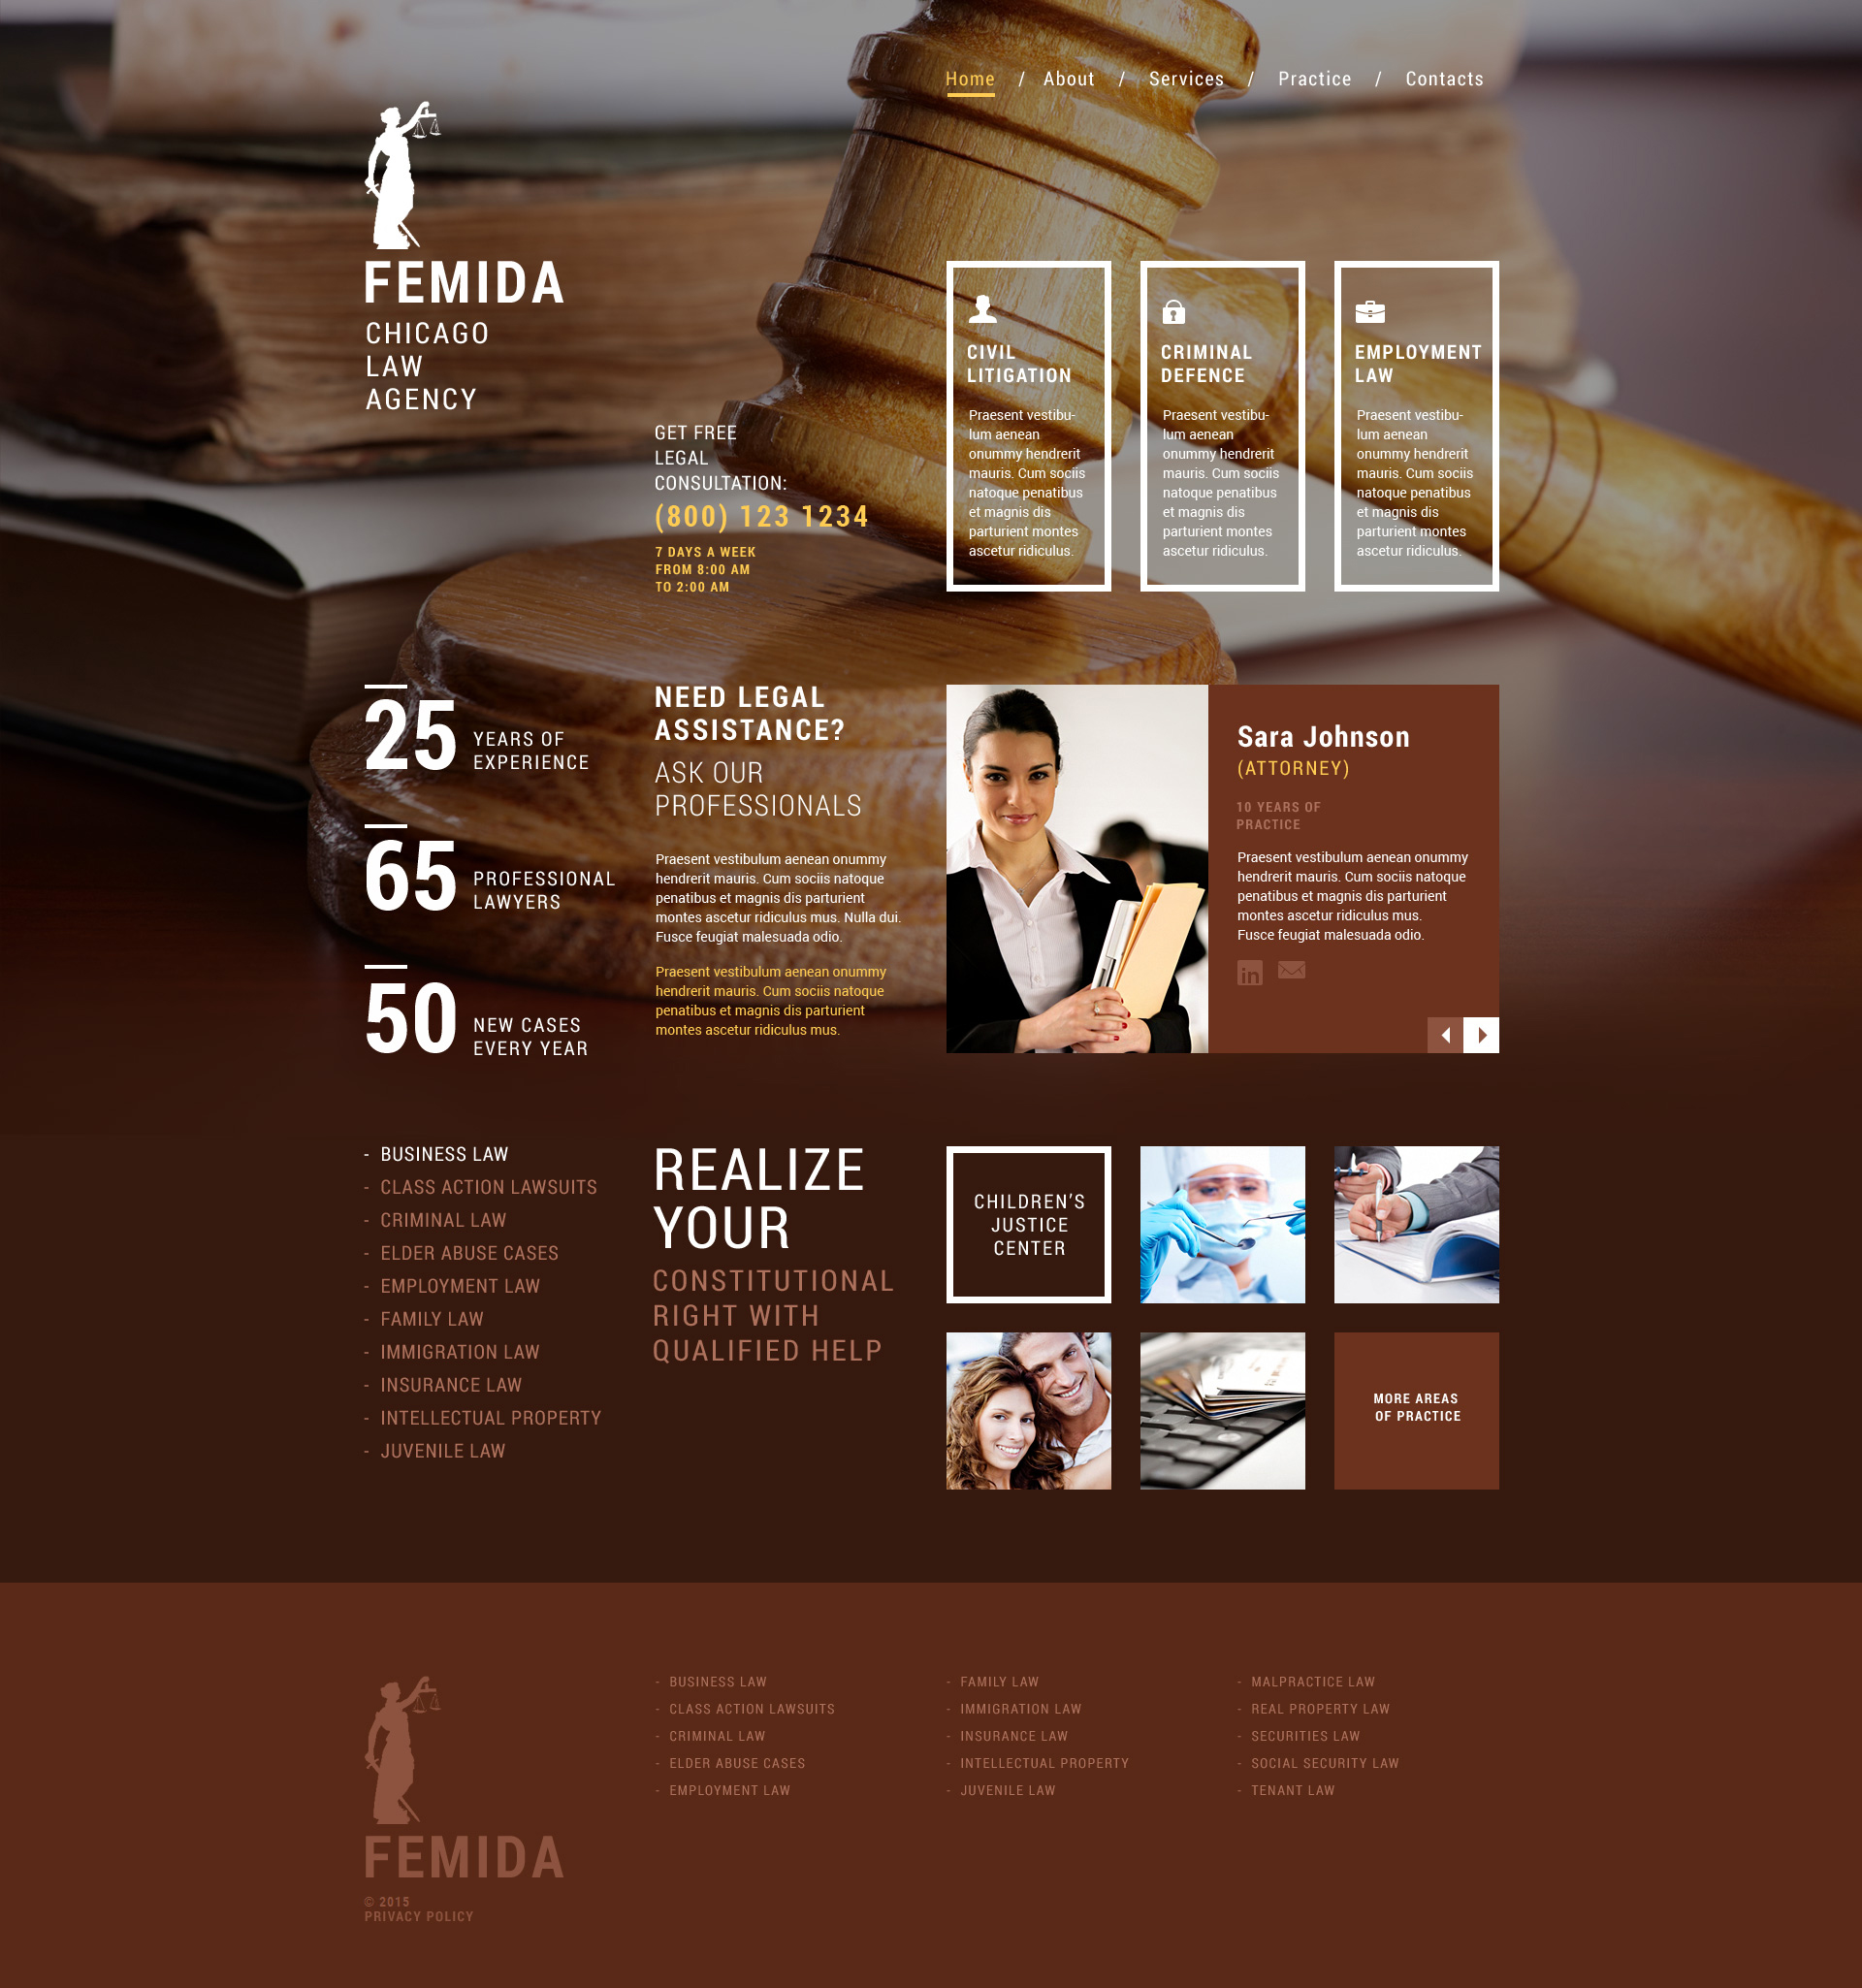 The Femida Law Agency Responsive Javascript Animated Design 52959, one of the best website templates of its kind (law, most popular), also known as femida law agency website template, constitution website template, rules website template, case website template, business website template, affair website template, practice website template, experience website template, membership website template, work website template, articles website template, responsibility website template, biography website template, hobbies website template, testimonials website template, client website template, clients website template, partners website template, services website template, specials website template, help website template, support website template, advocacy website template, maintenance website template, protect and related with femida law agency, constitution, rules, case, business, affair, practice, experience, membership, work, articles, responsibility, biography, hobbies, testimonials, client, clients, partners, services, specials, help, support, advocacy, maintenance, protect, etc.